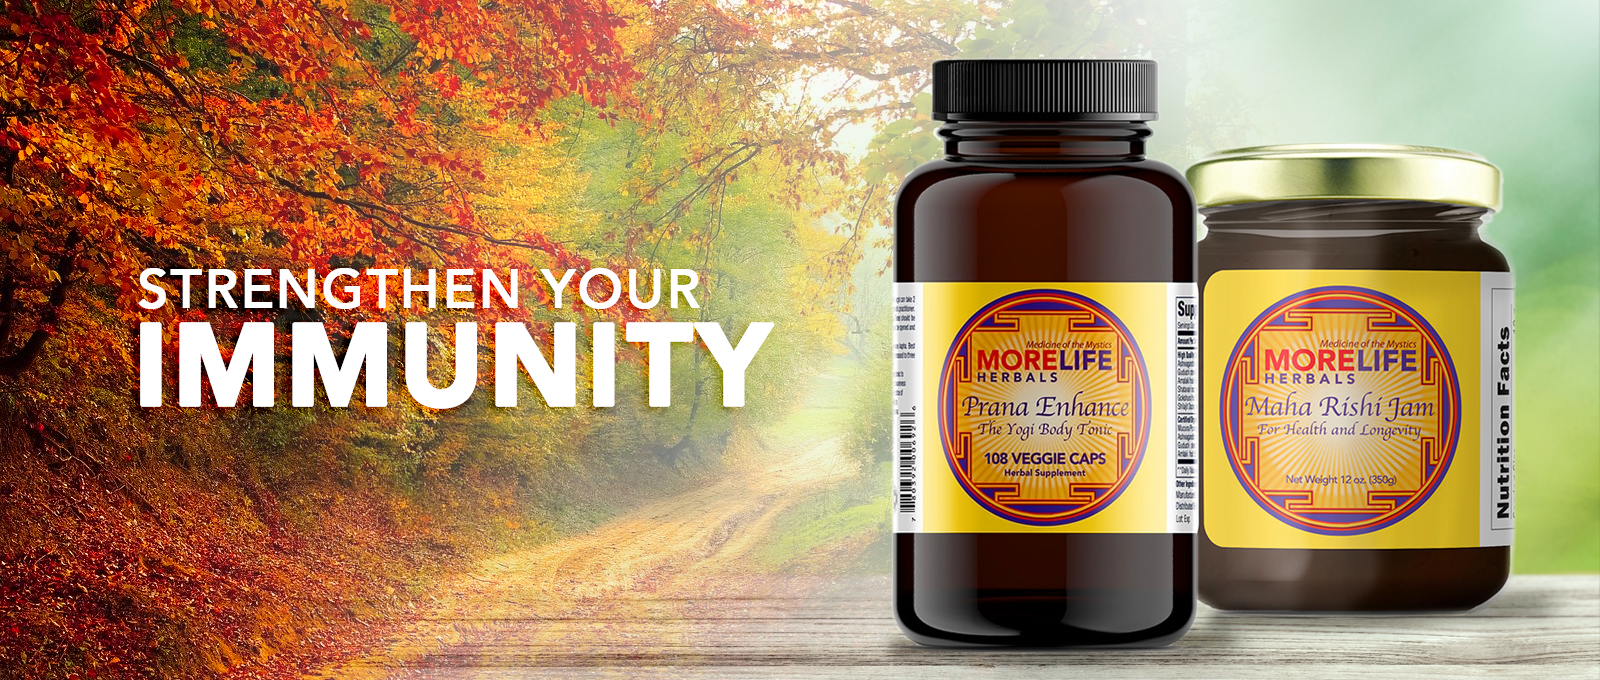 MoreLife Market – Strengthen your Immunity